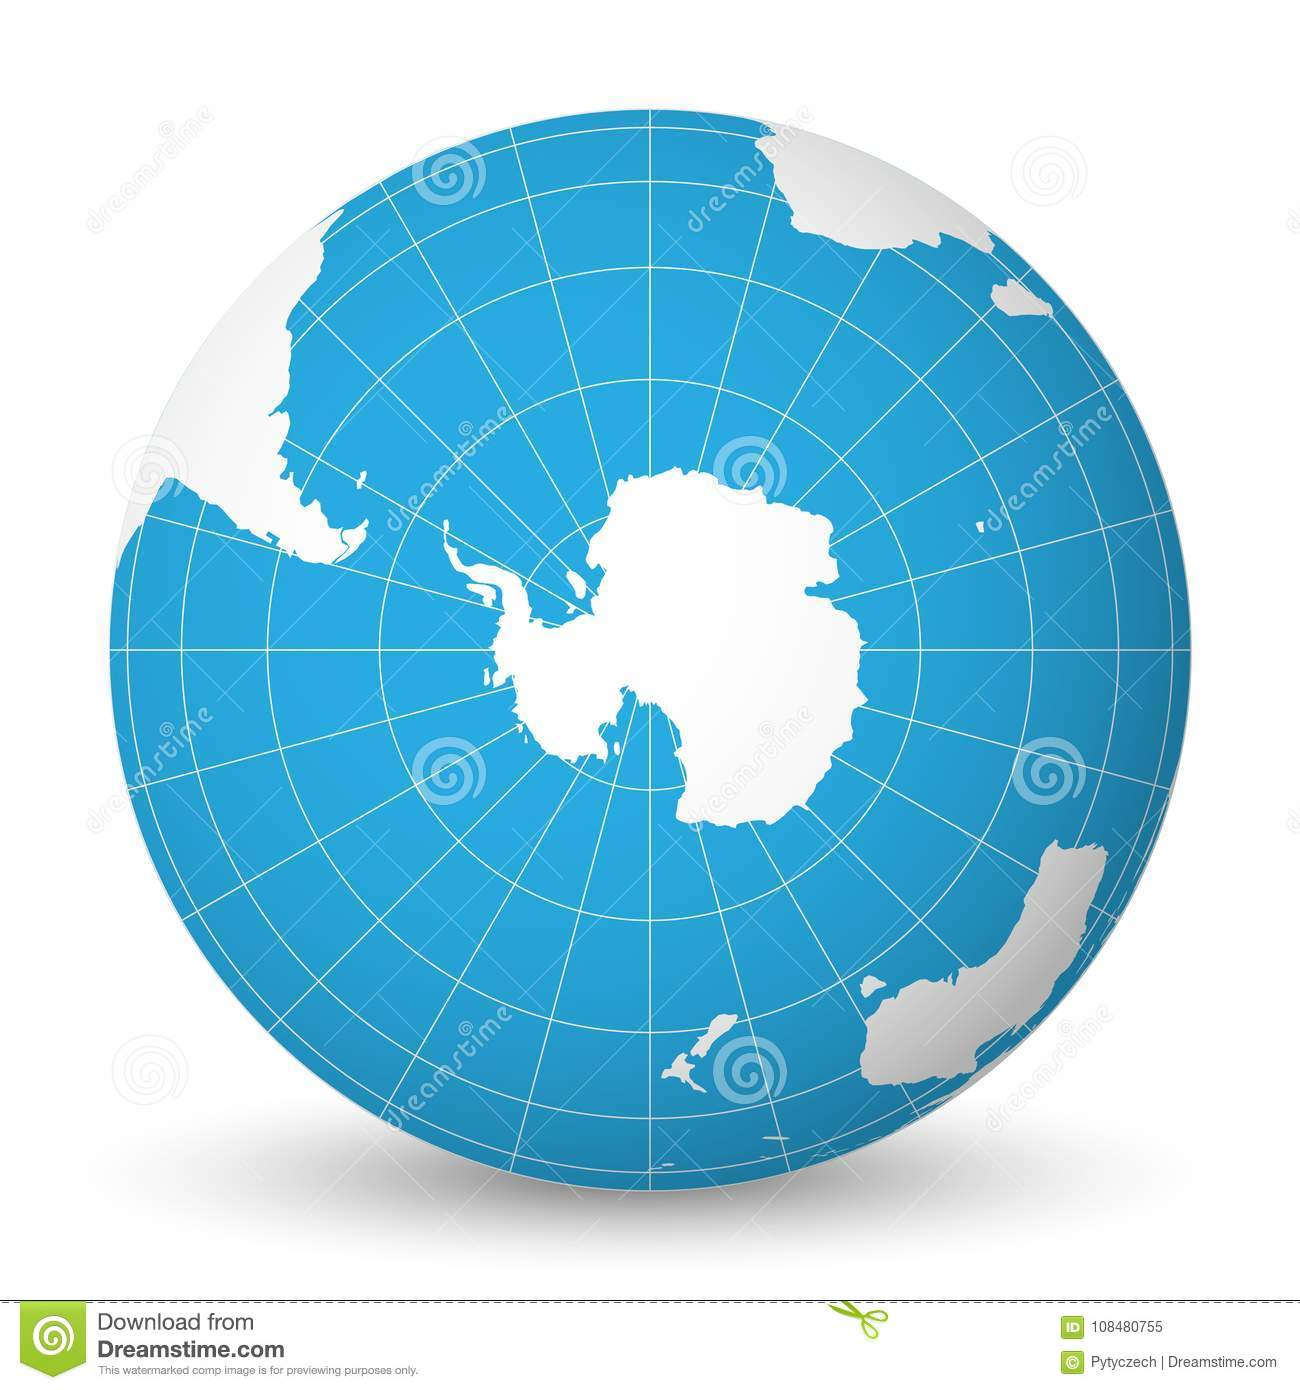 South Pole World Map.Earth Globe With White World Map And Blue Seas And Oceans Focused On